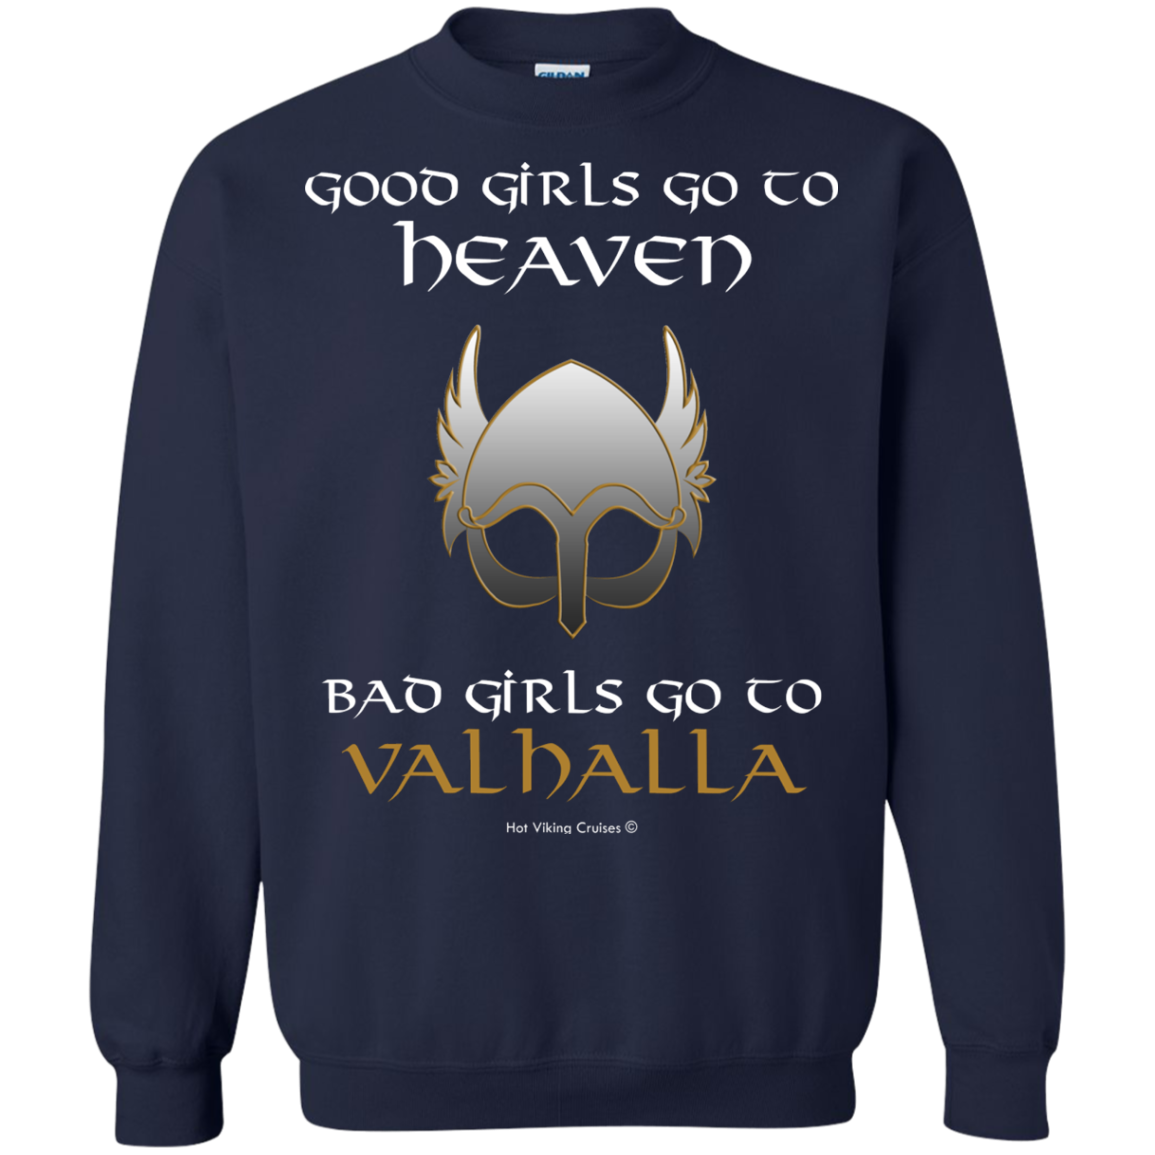 Bad Girls Go to Valhalla T-Shirt & Hoodie - The Sun Cat